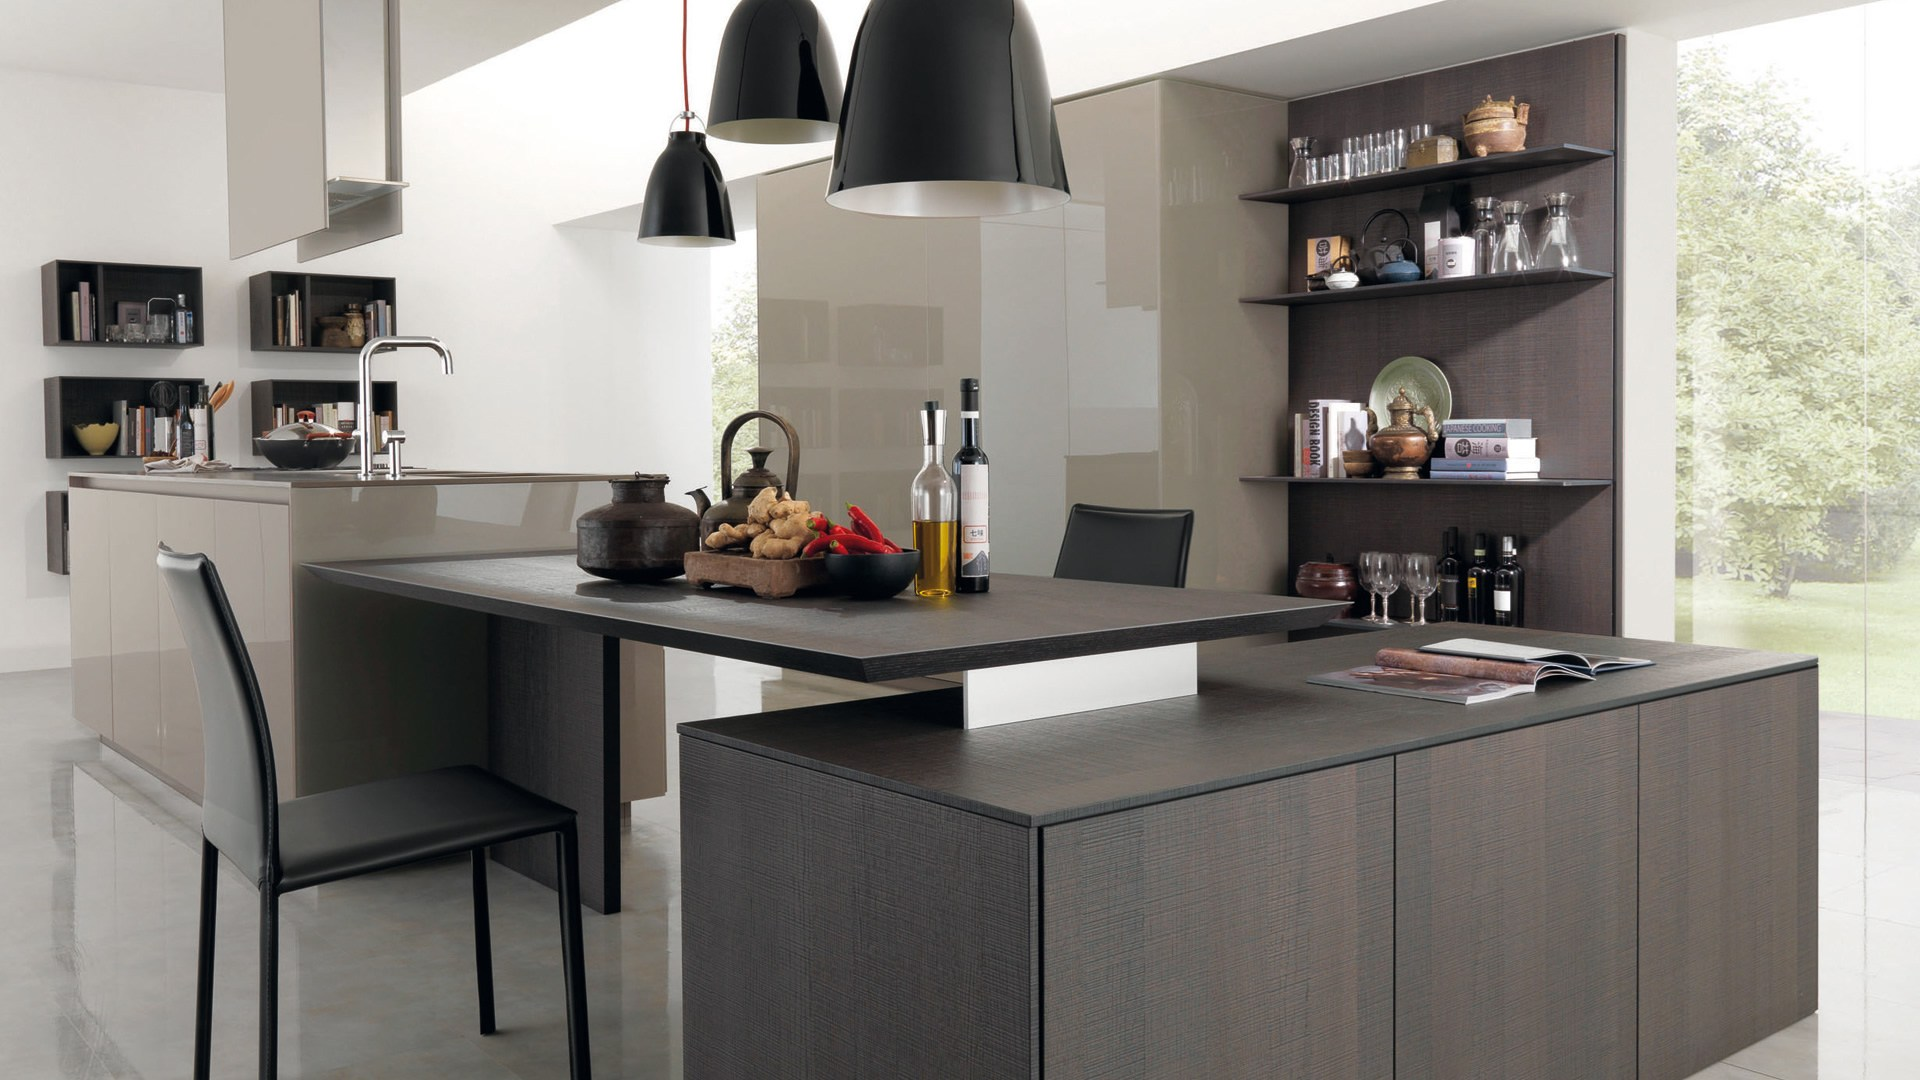 Cocina Integral Wooden Fitted Kitchen Kubic 4 By Euromobil Design Roberto